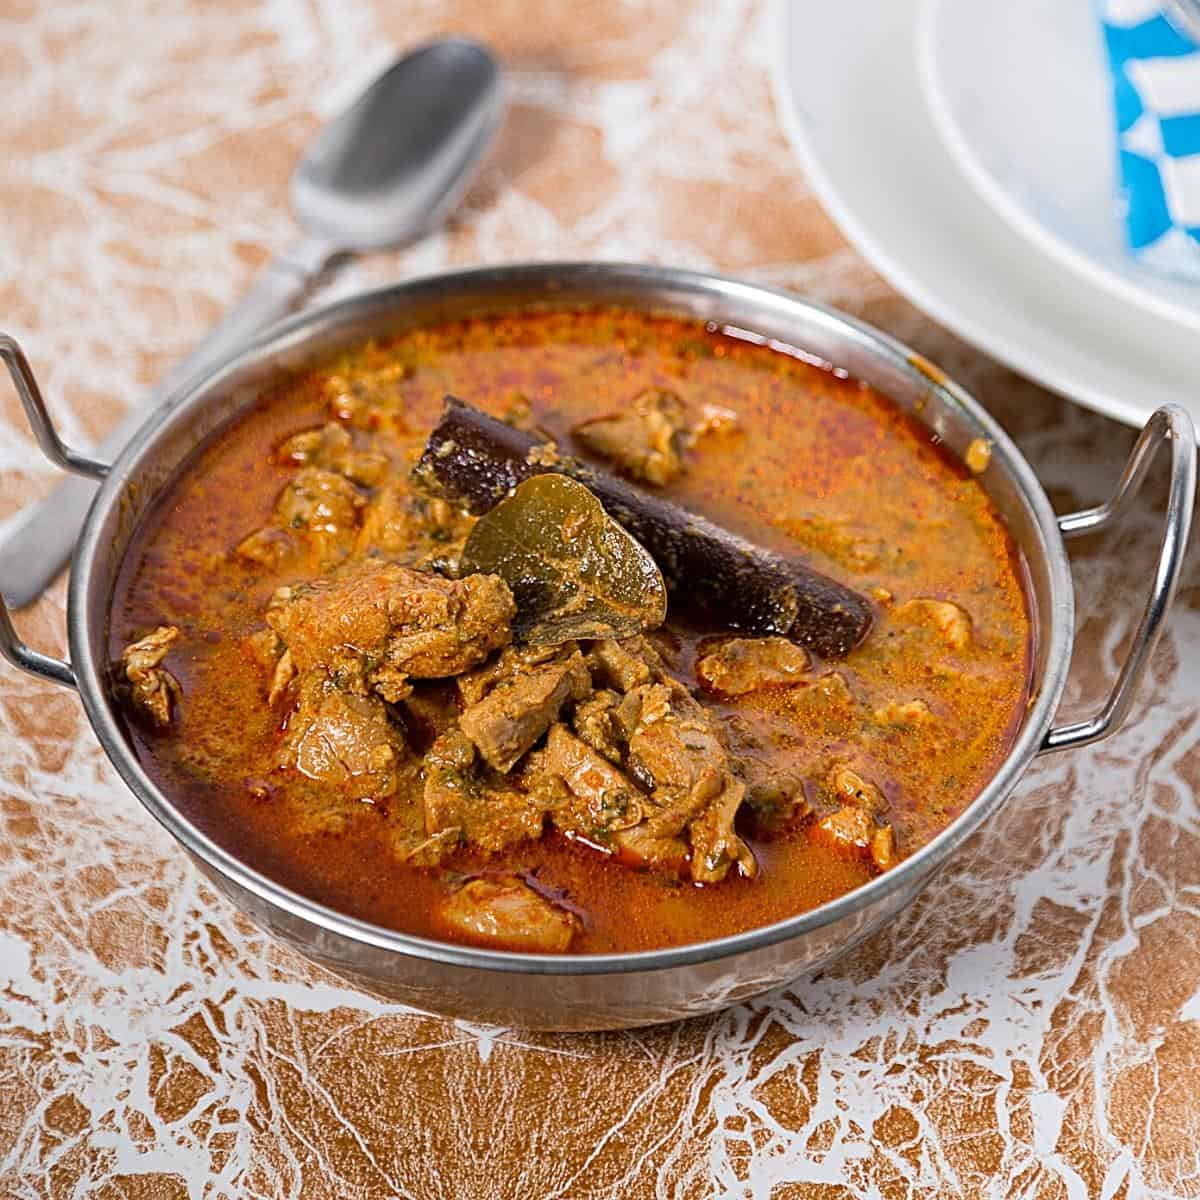 An Indian dish with chicken curry.